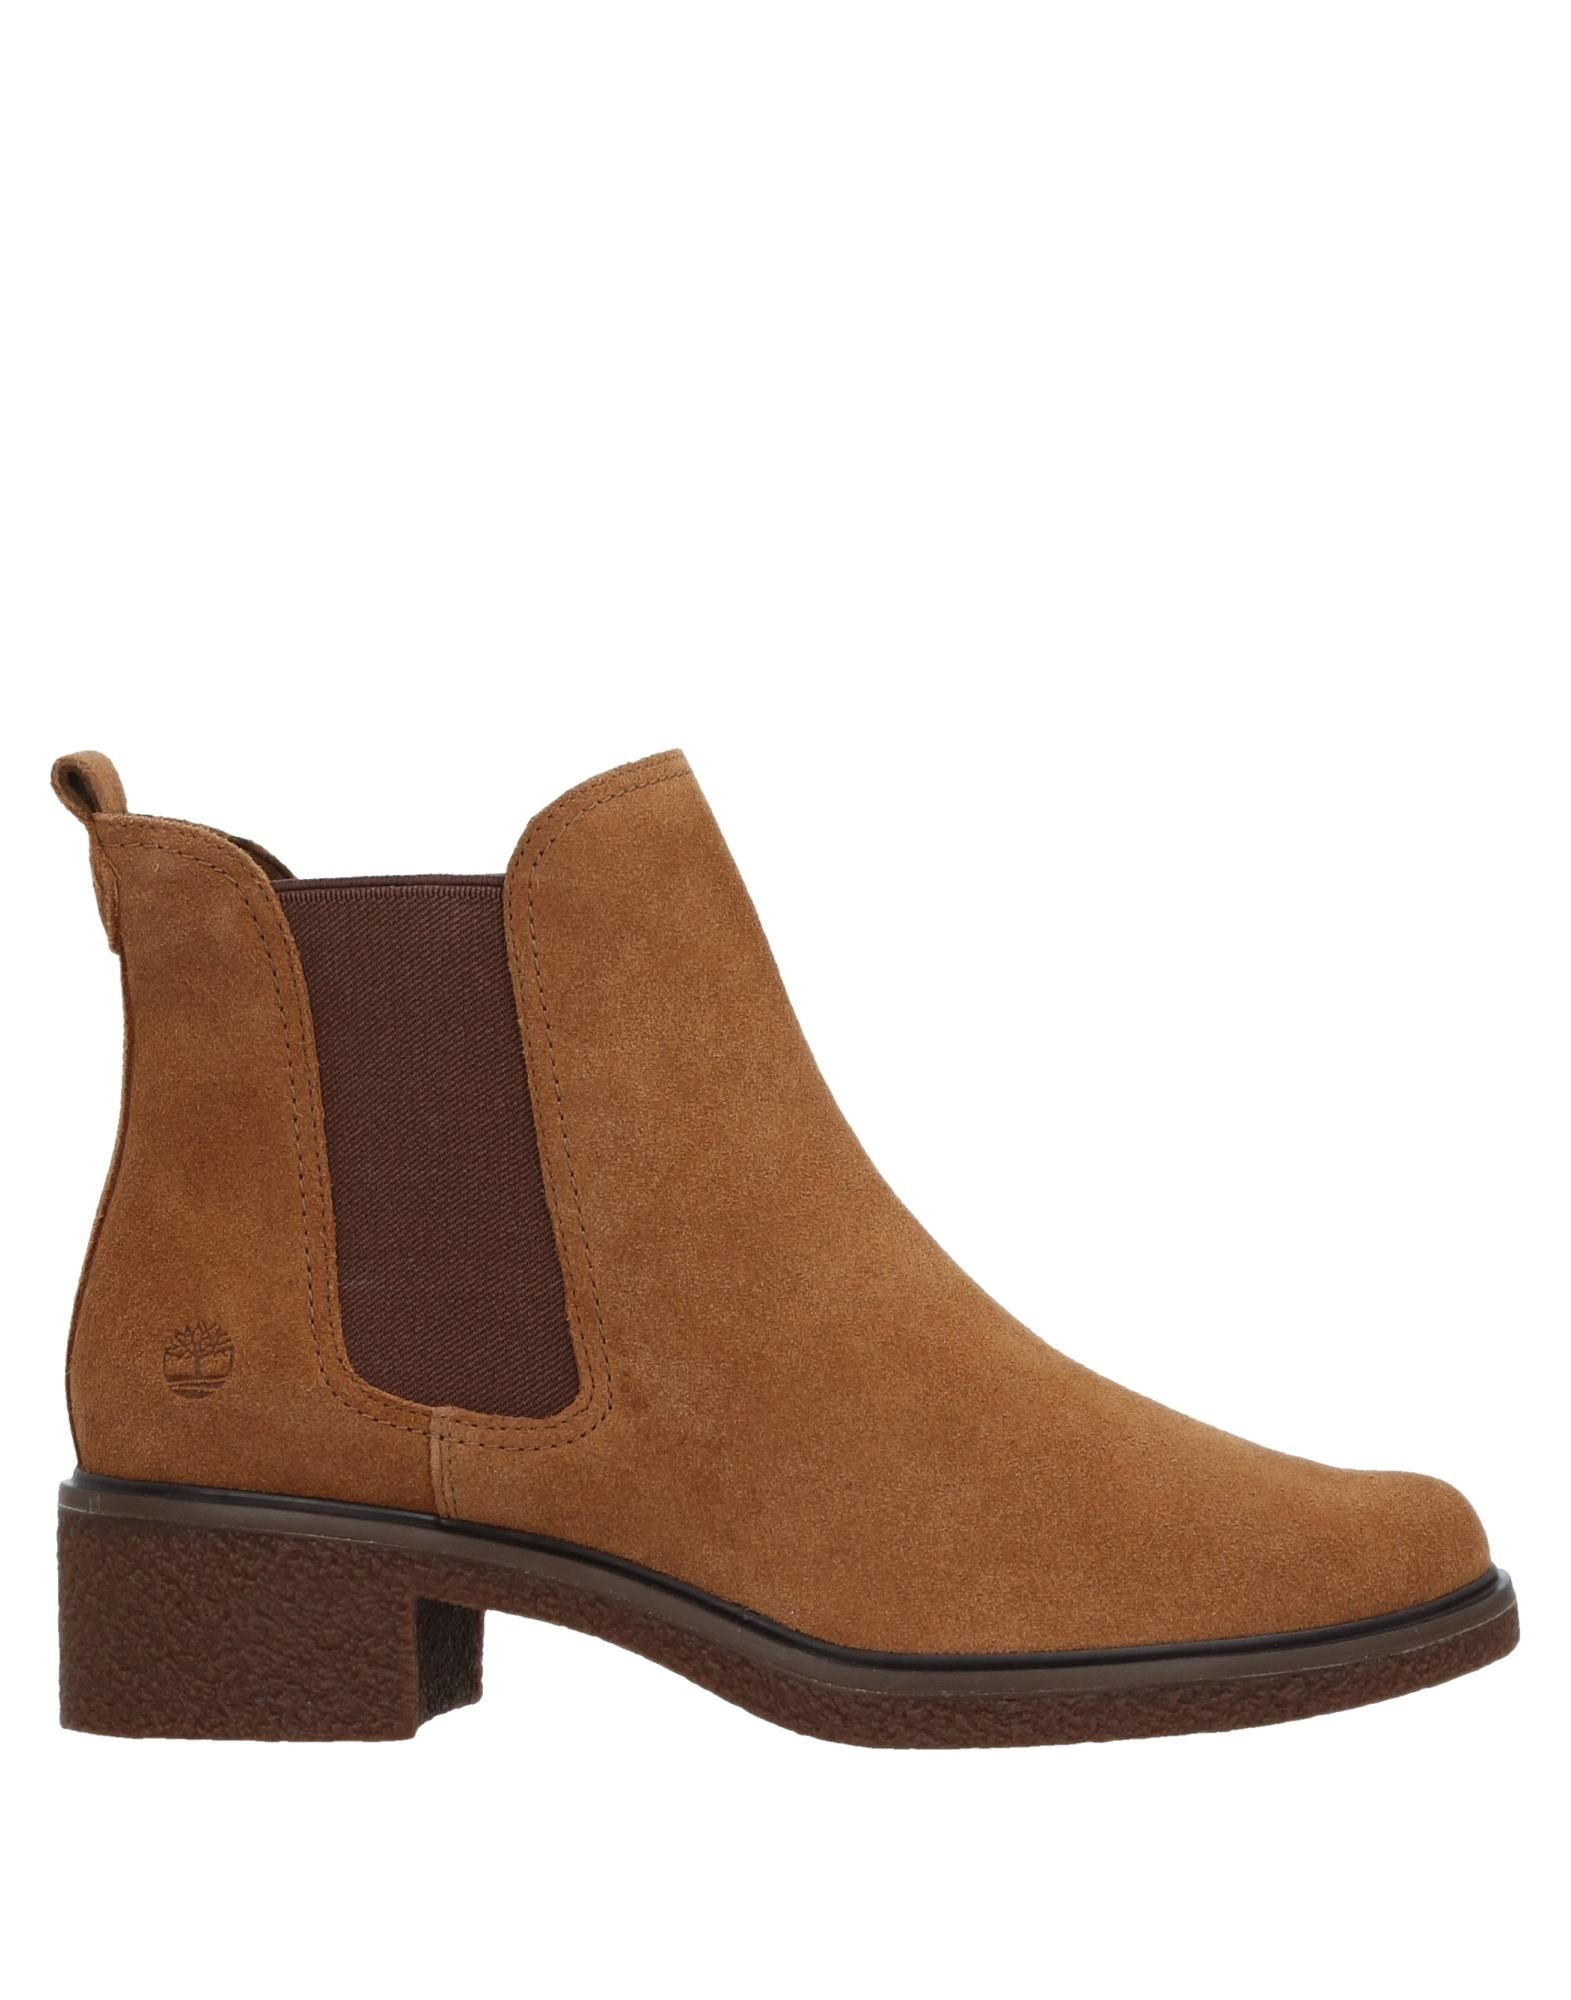 4c02b535aa Timberland Ankle Boot - Women Timberland Ankle Boots online on YOOX ...